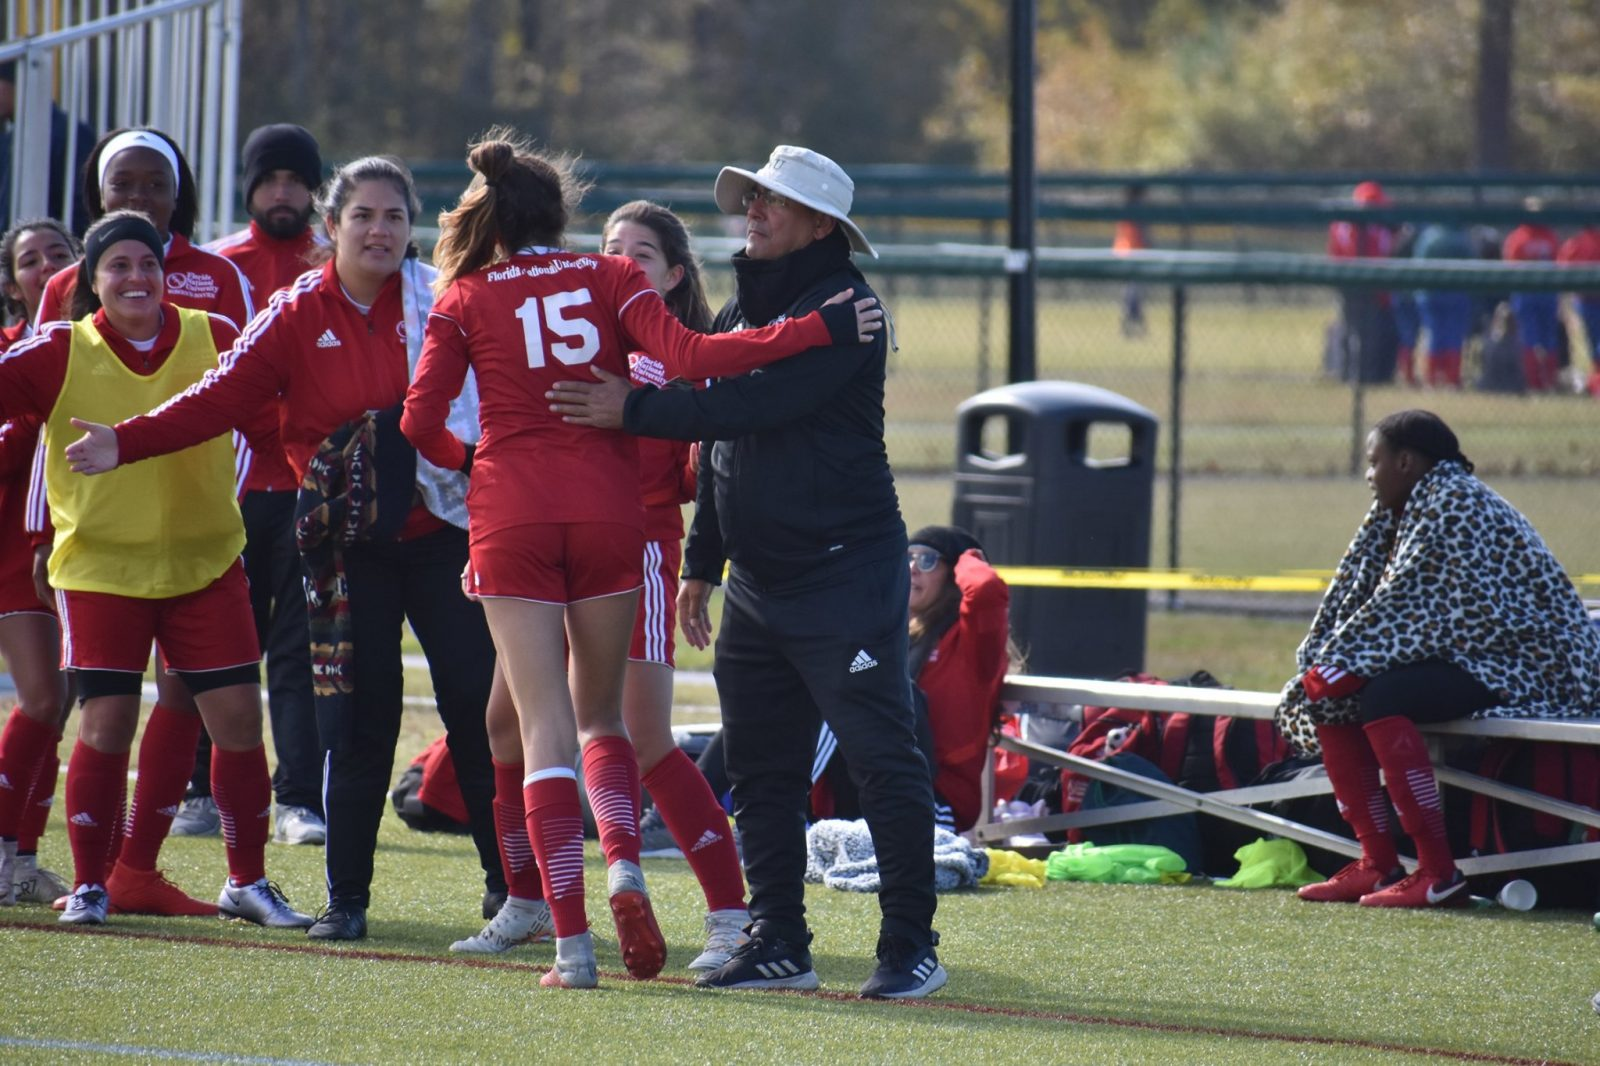 Women's soccer player Mickaela celebrating a goal with coach Giovanni